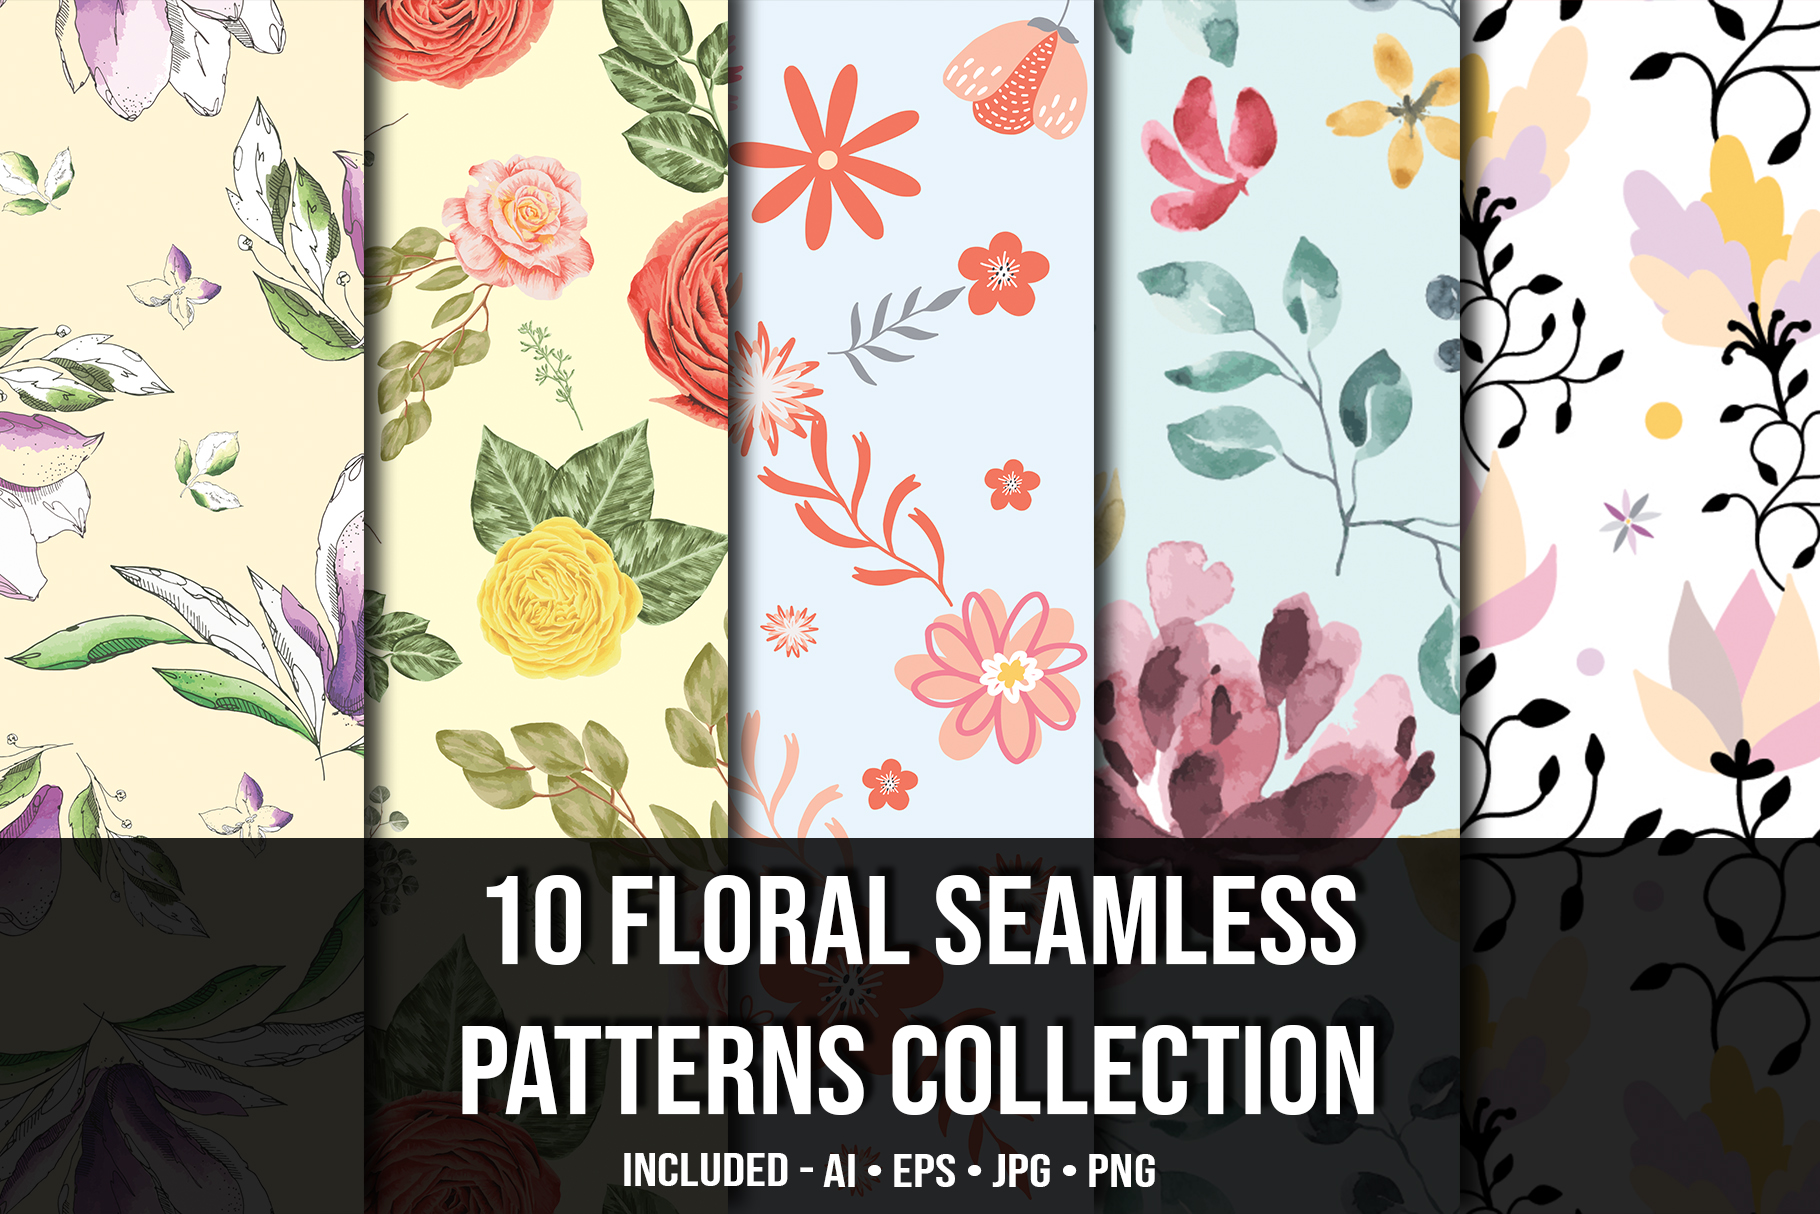 Floral seamless collection. Cover image.